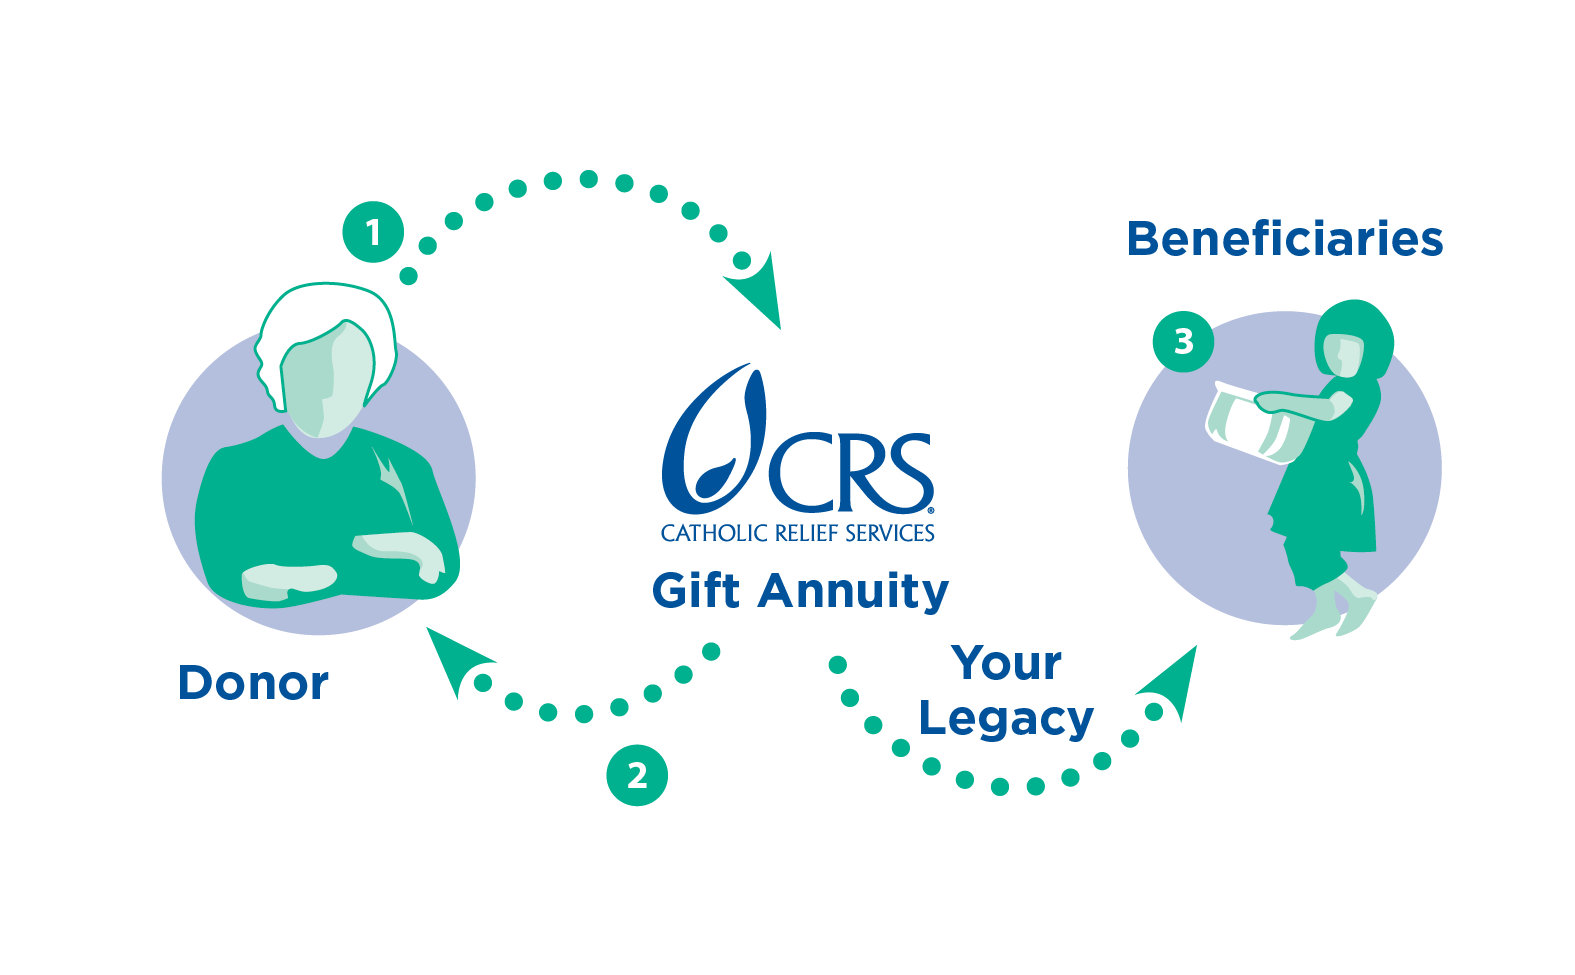 ... a charitable gift that helps CRS serve poor and vulnerable people overseas, and guarantees a fixed lifetime income for you and/or someone you designate ...